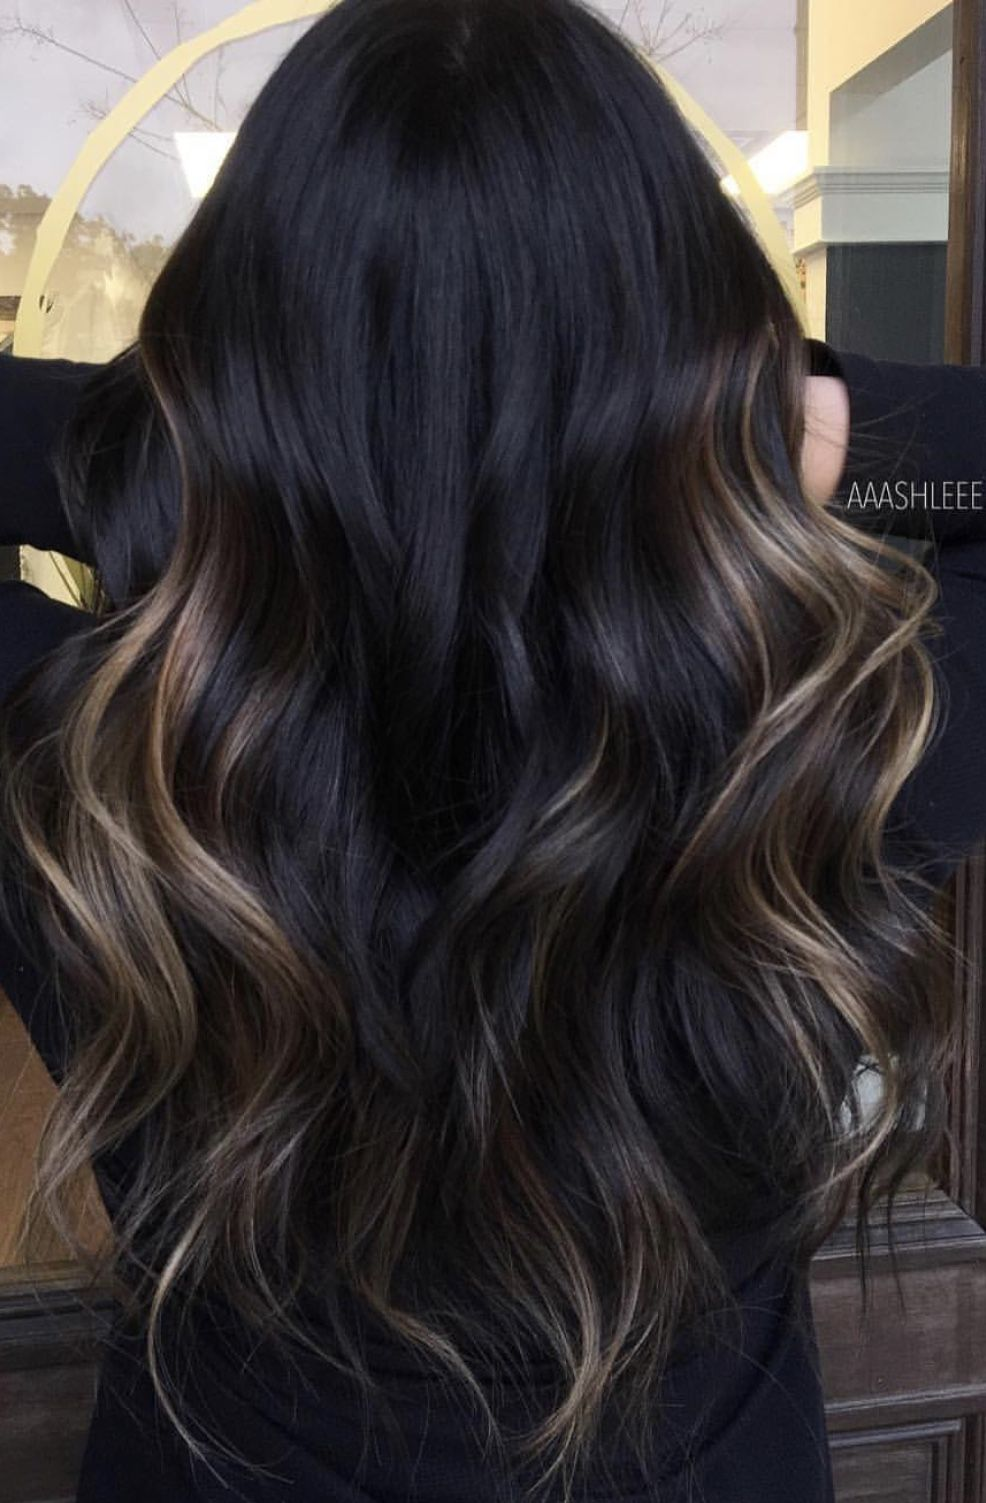 This Is Exactly What I Want Just A Few Highlights Peeking Through It S Not Too Much And Not Too Little J Hair Color Unique Long Hair Color Brown Hair Balayage